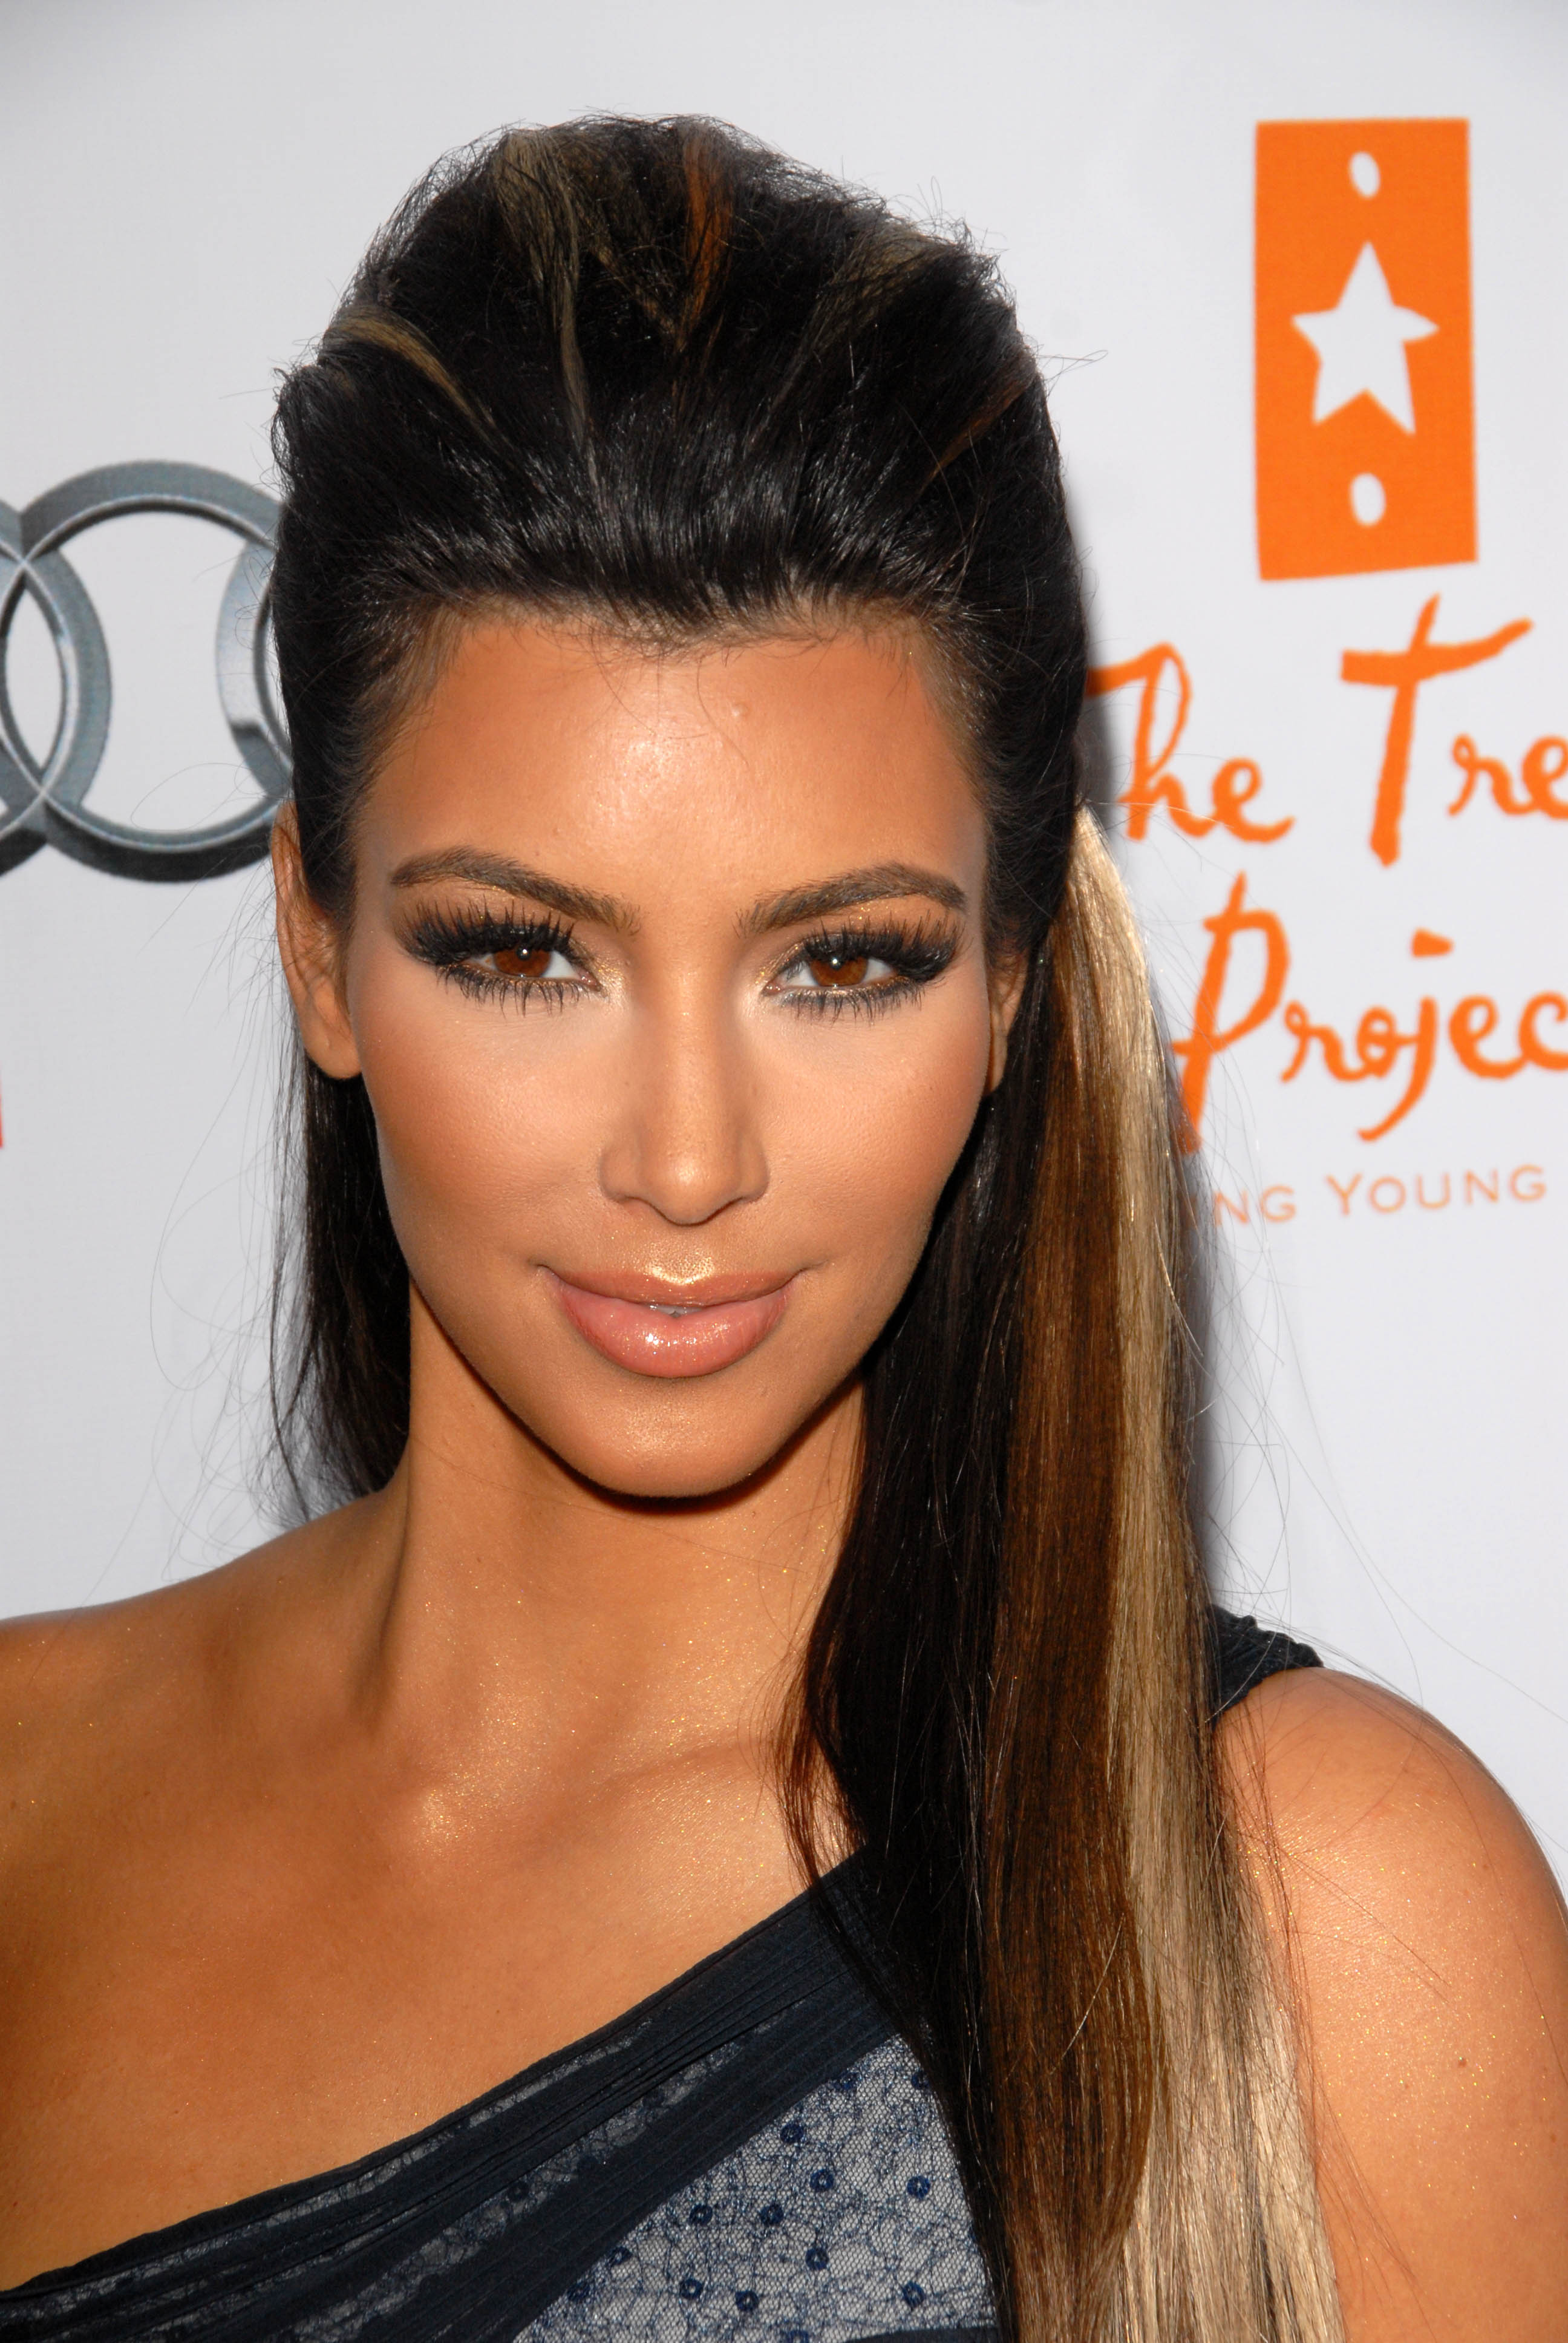 Kim Kardashian Plastic Surgery Before and After Photos Kim Kardashian